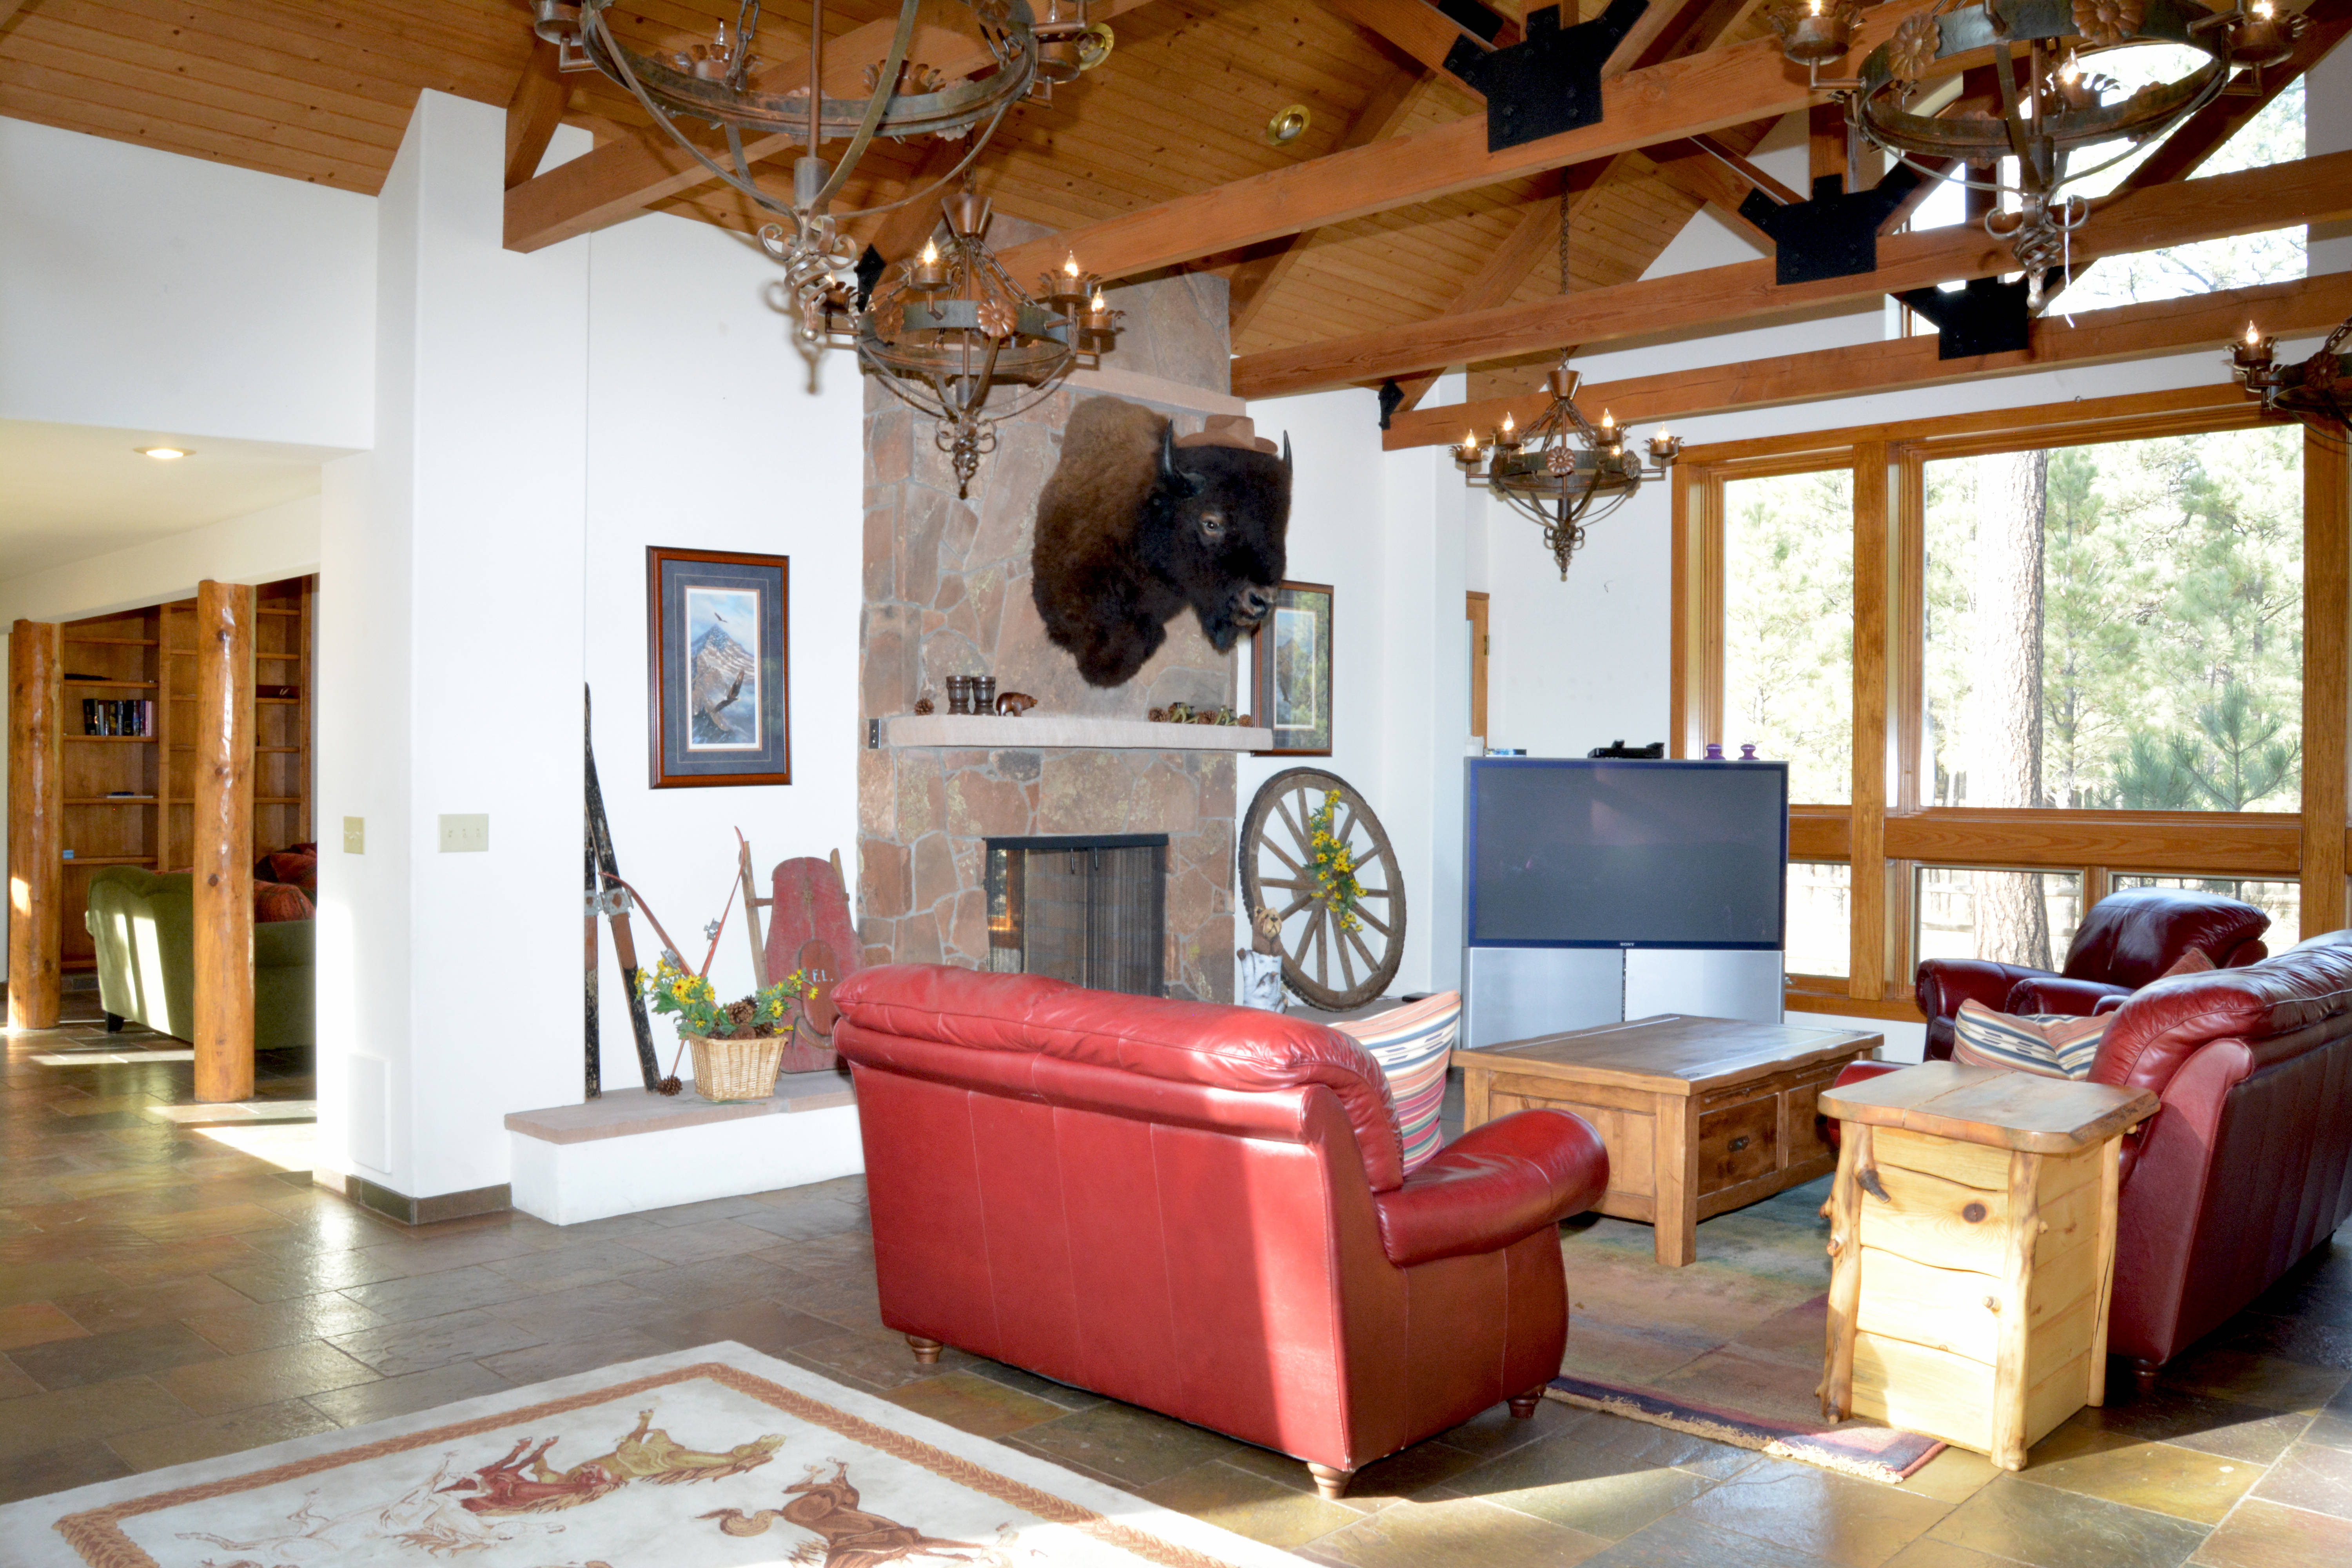 az stores img minutes the in forested club from living furniture flagstaff collins real estate team country